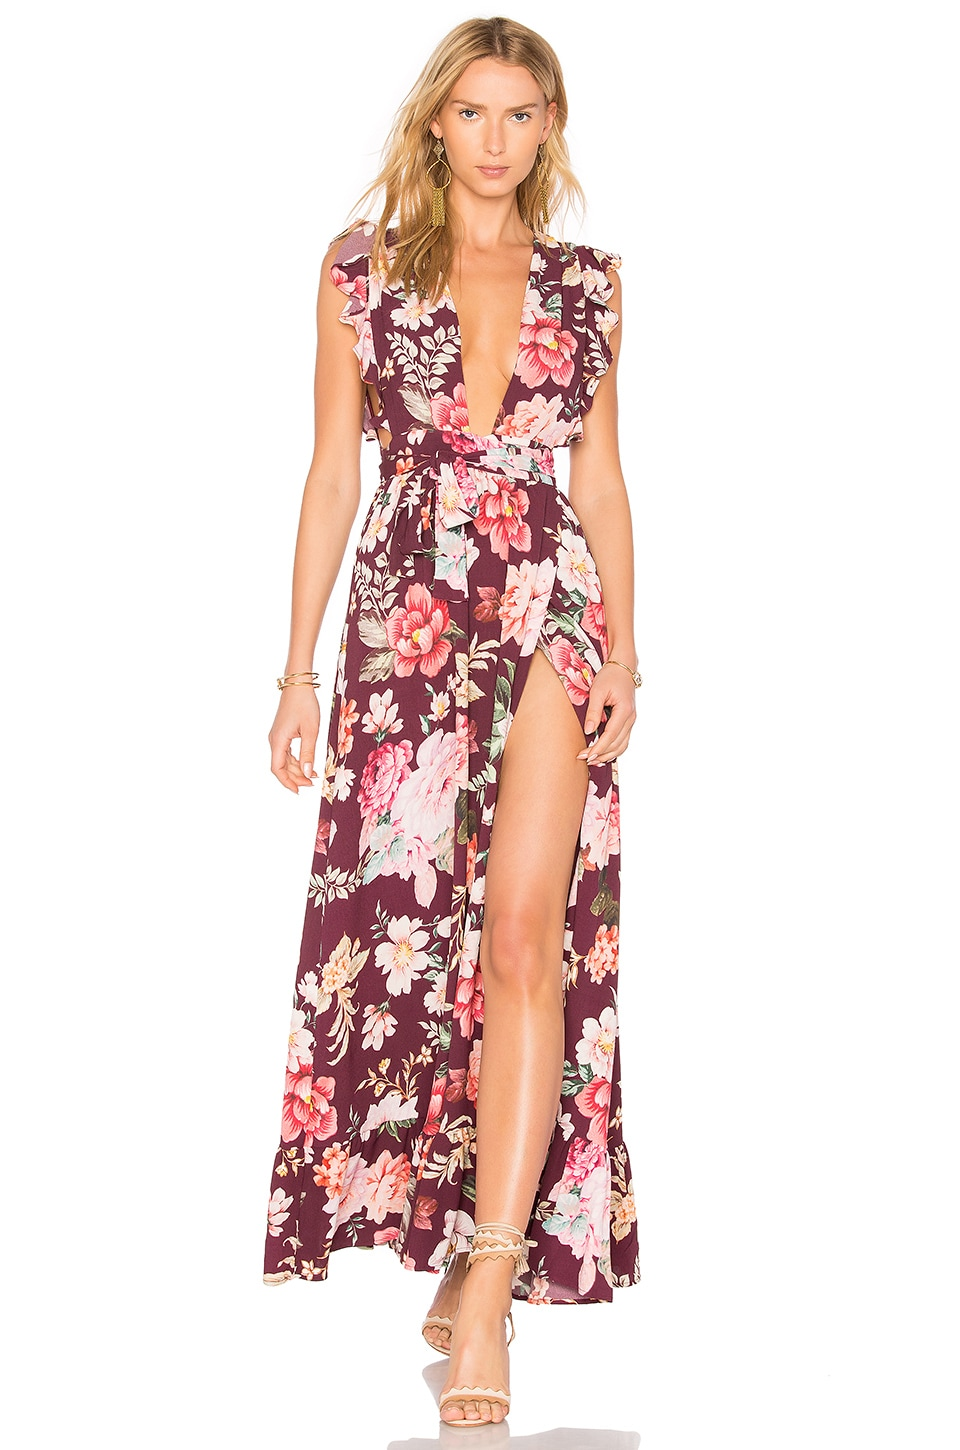 MAJORELLE Sweet Pea Dress in Karolina Print